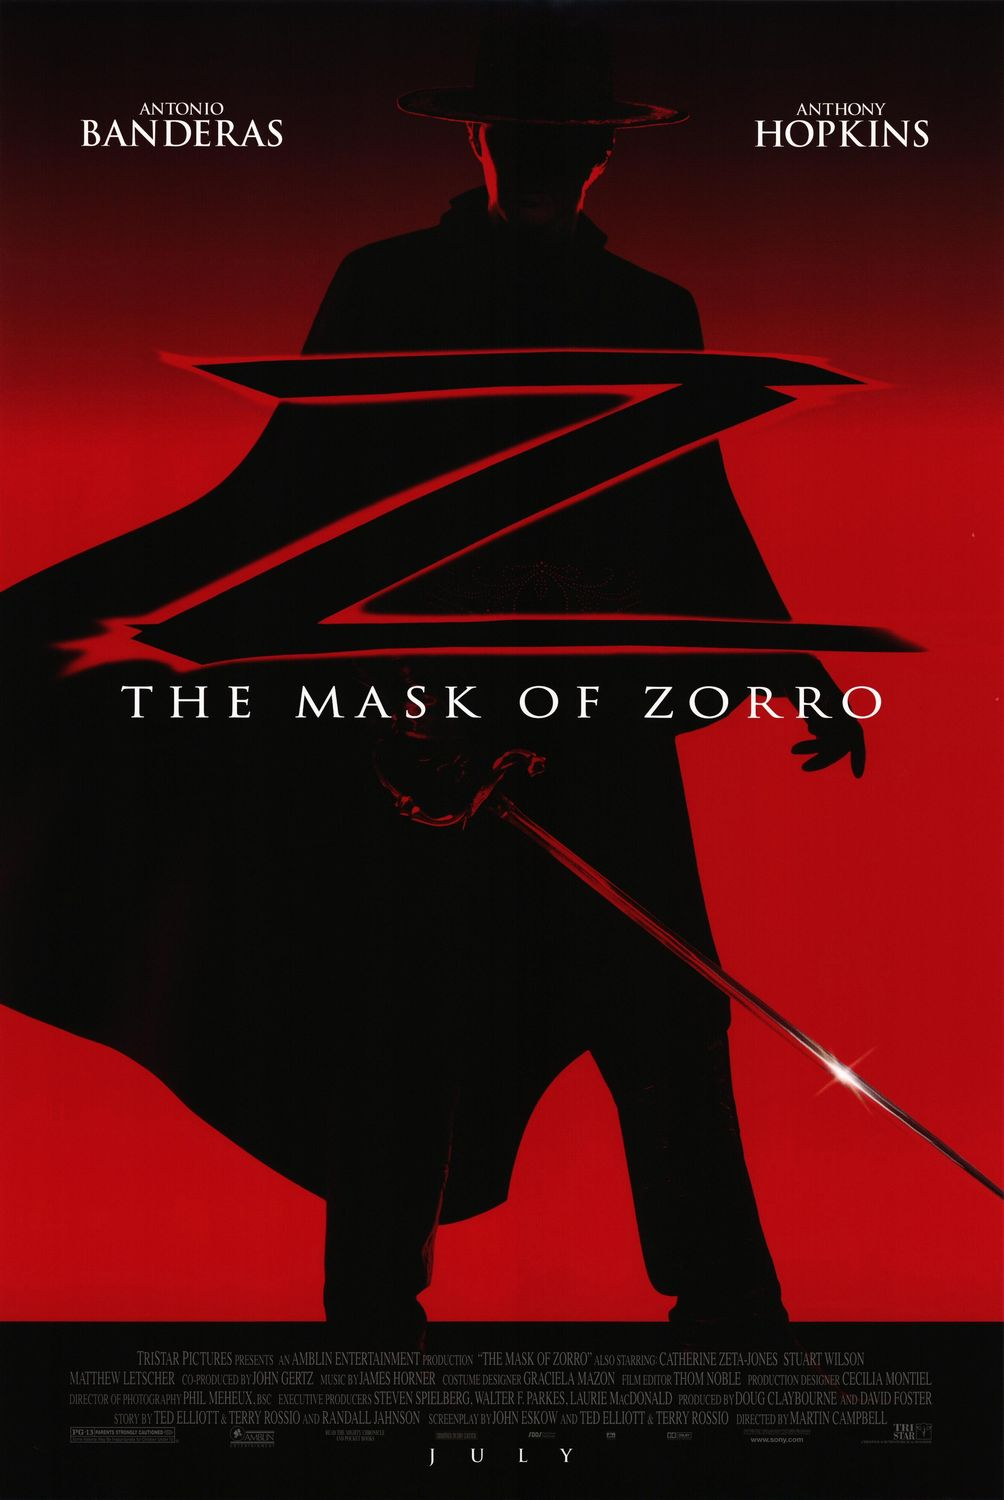 zorro reborn sends the masked swordman to a post